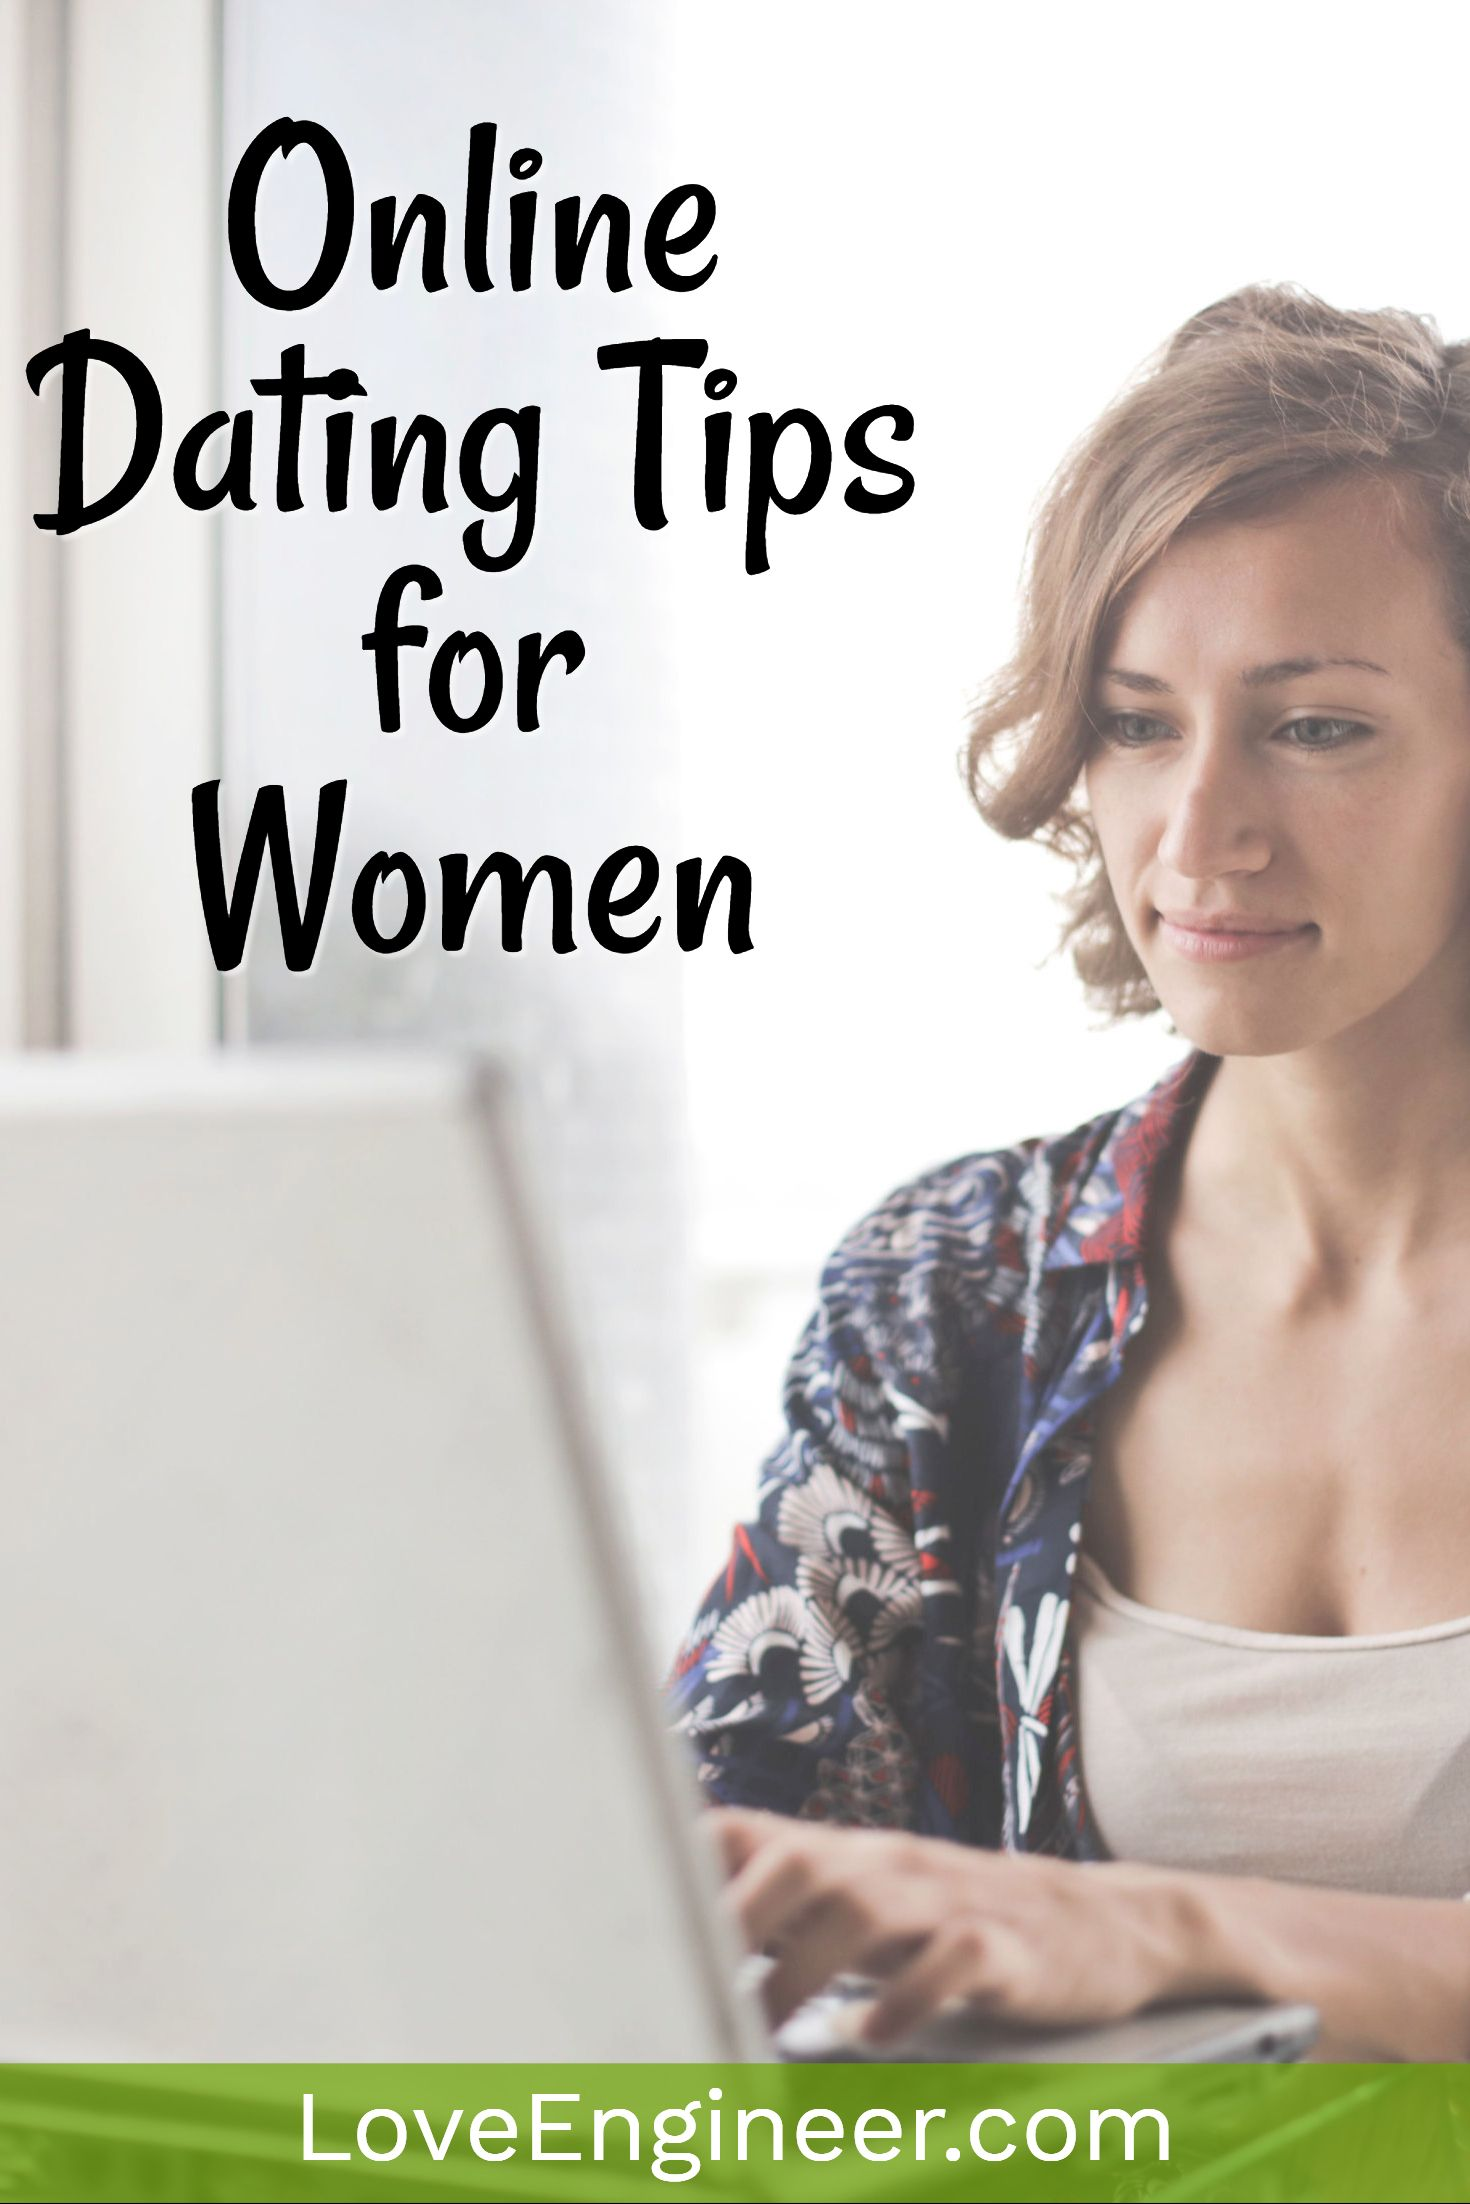 Online dating tip for woman